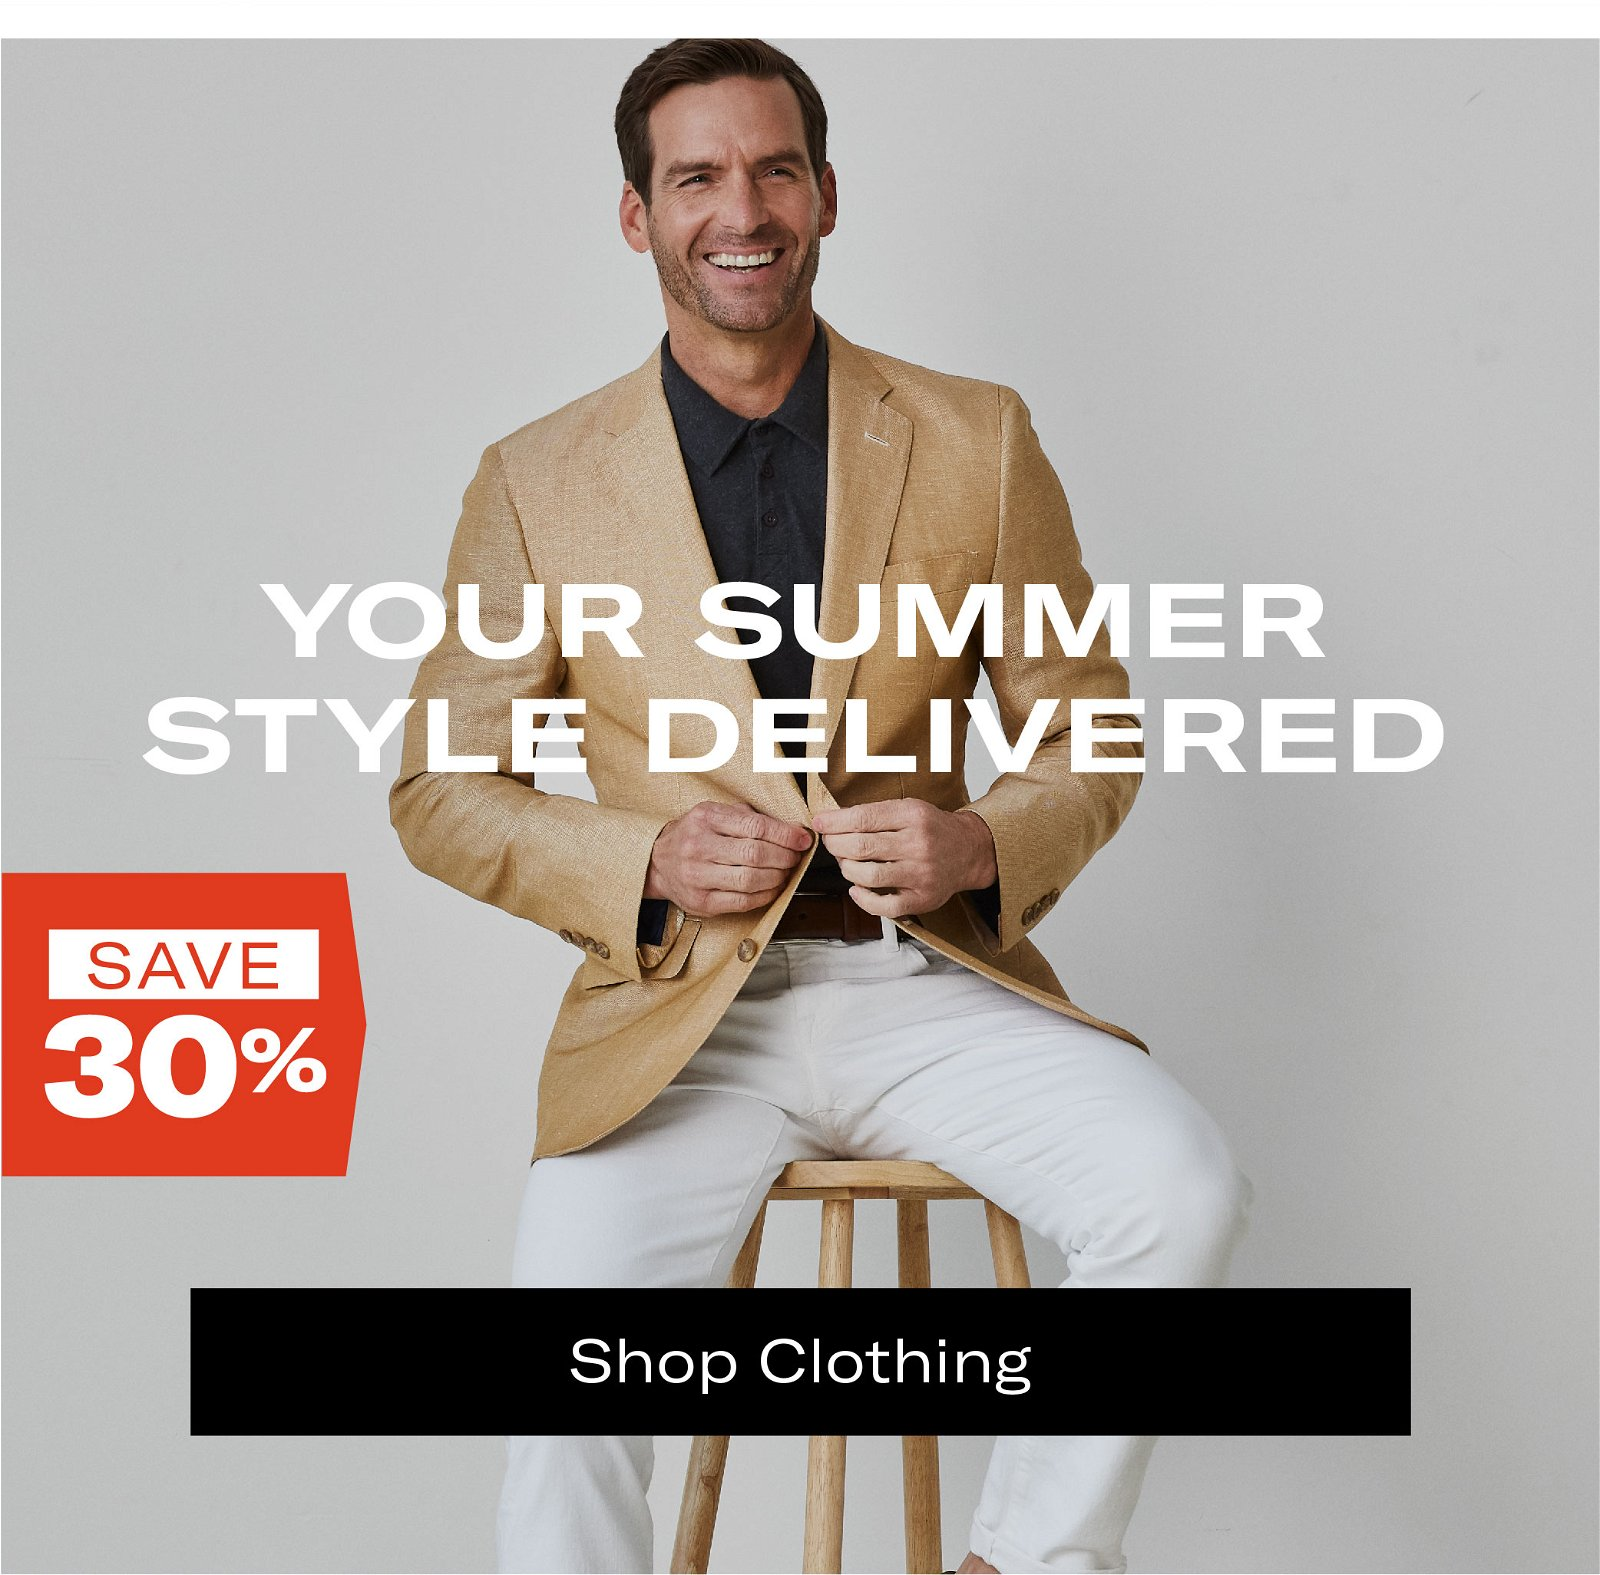 Save Up To 30% on Select Clothing Styles